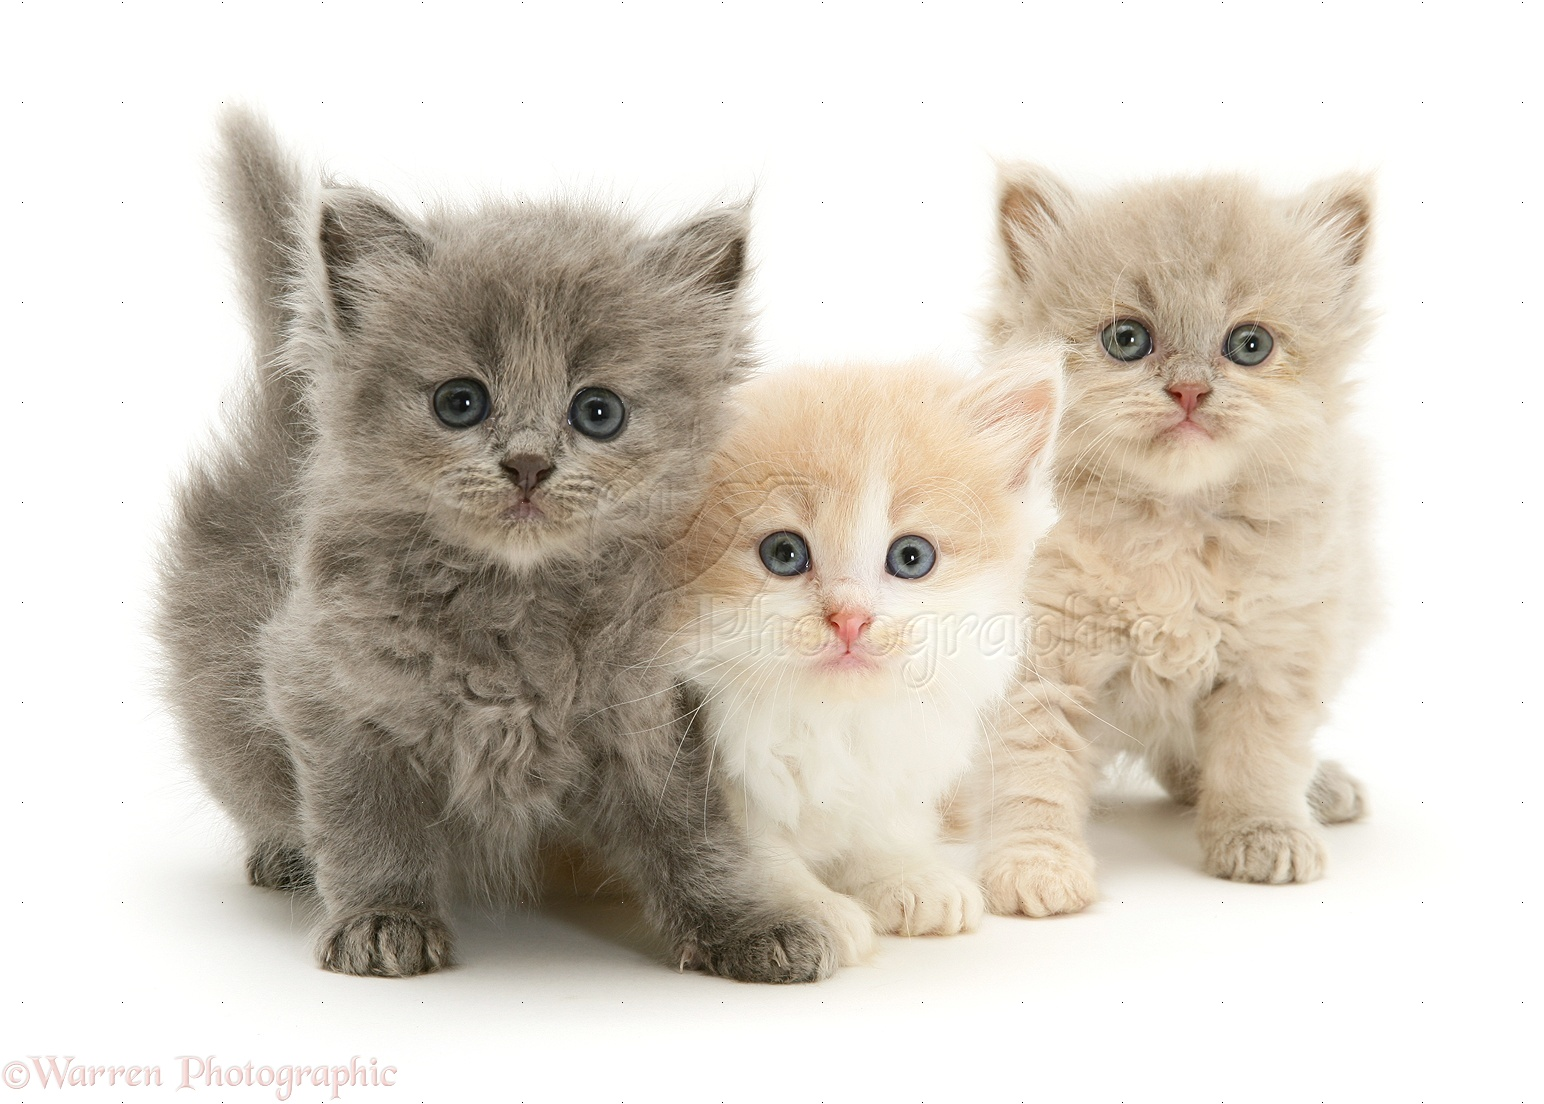 Three cute kittens photo wp10113 The three cats